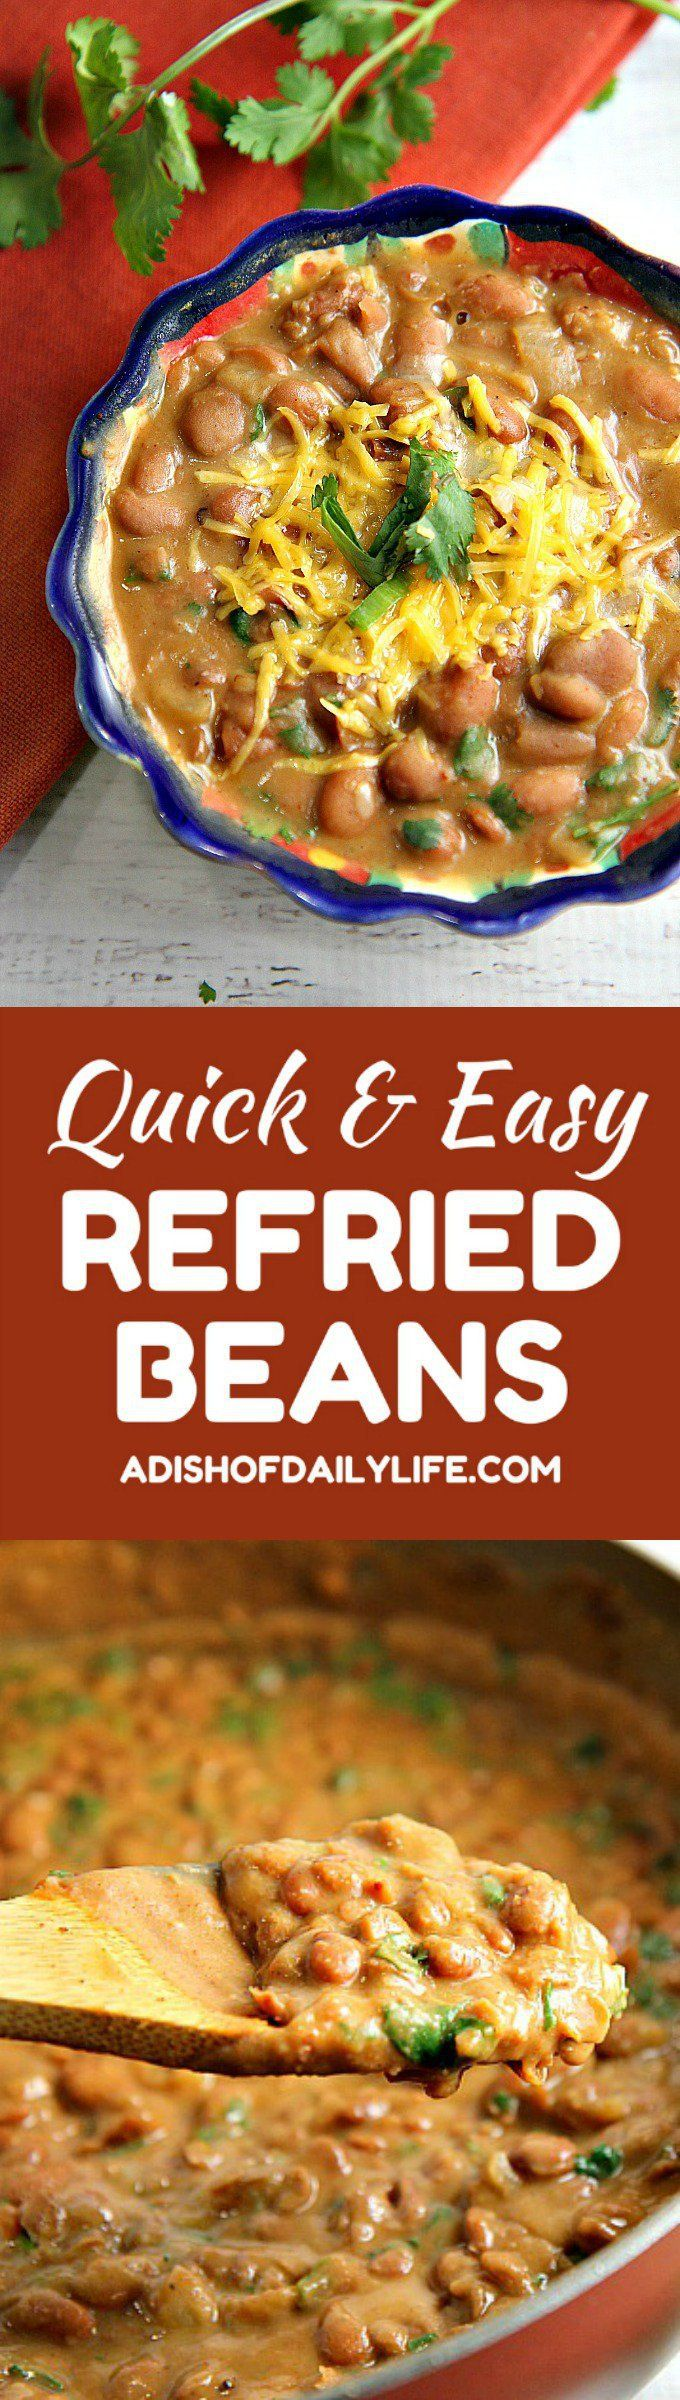 You'll never eat refried beans from a can again after trying this easy homemade refried beans recipe! They only take 15 minutes to make, and they're so versatile...use them as a side dish, as a base for burritos, or in layered bean dip or loaded nachos as well! Mexican | Cinco de Mayo | side dish | Beans